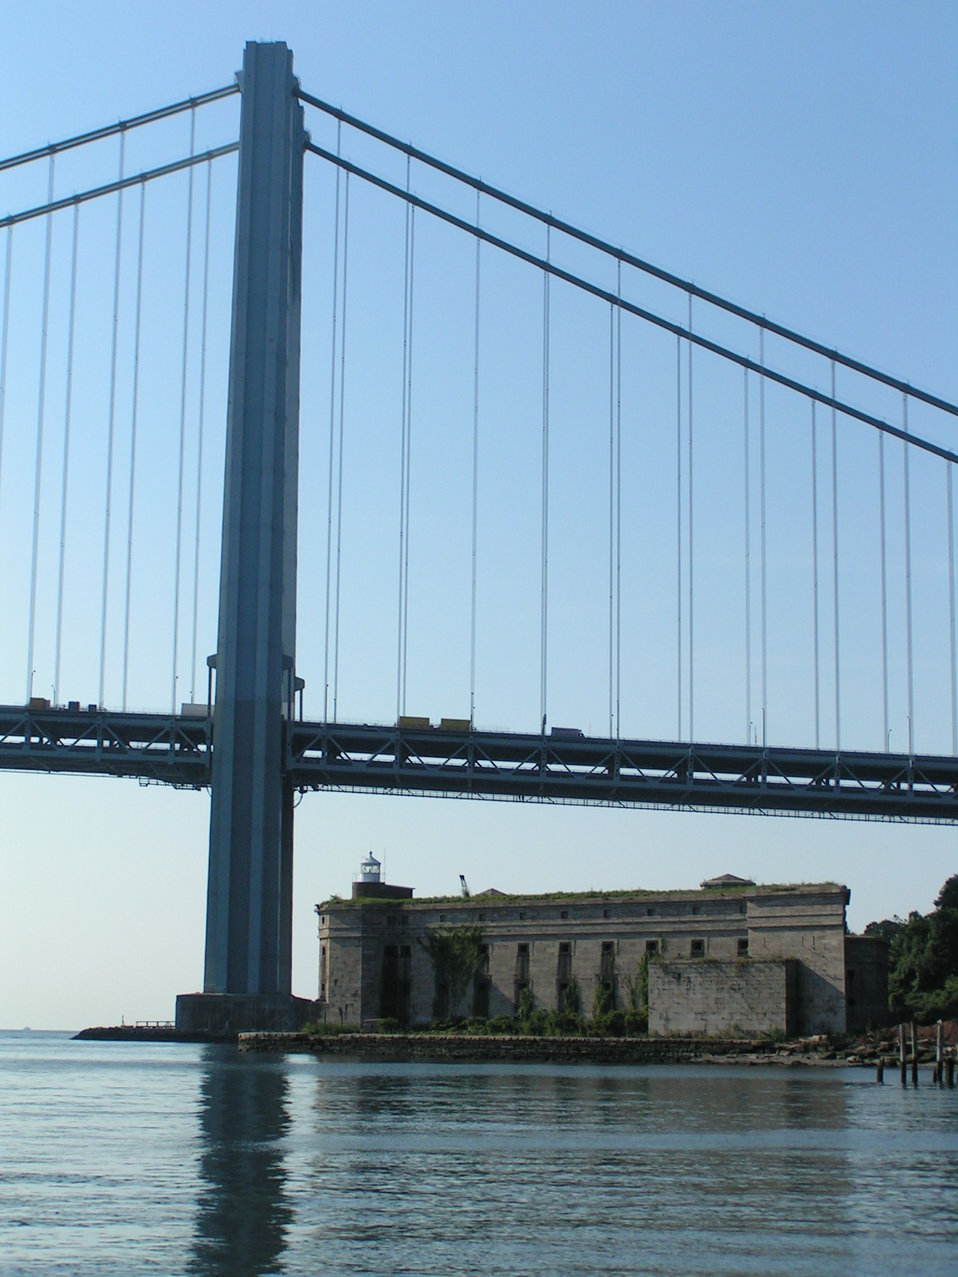 The west pier of the Verrazano-Narrows Bridge with Fort Wadsworth in the foreground.